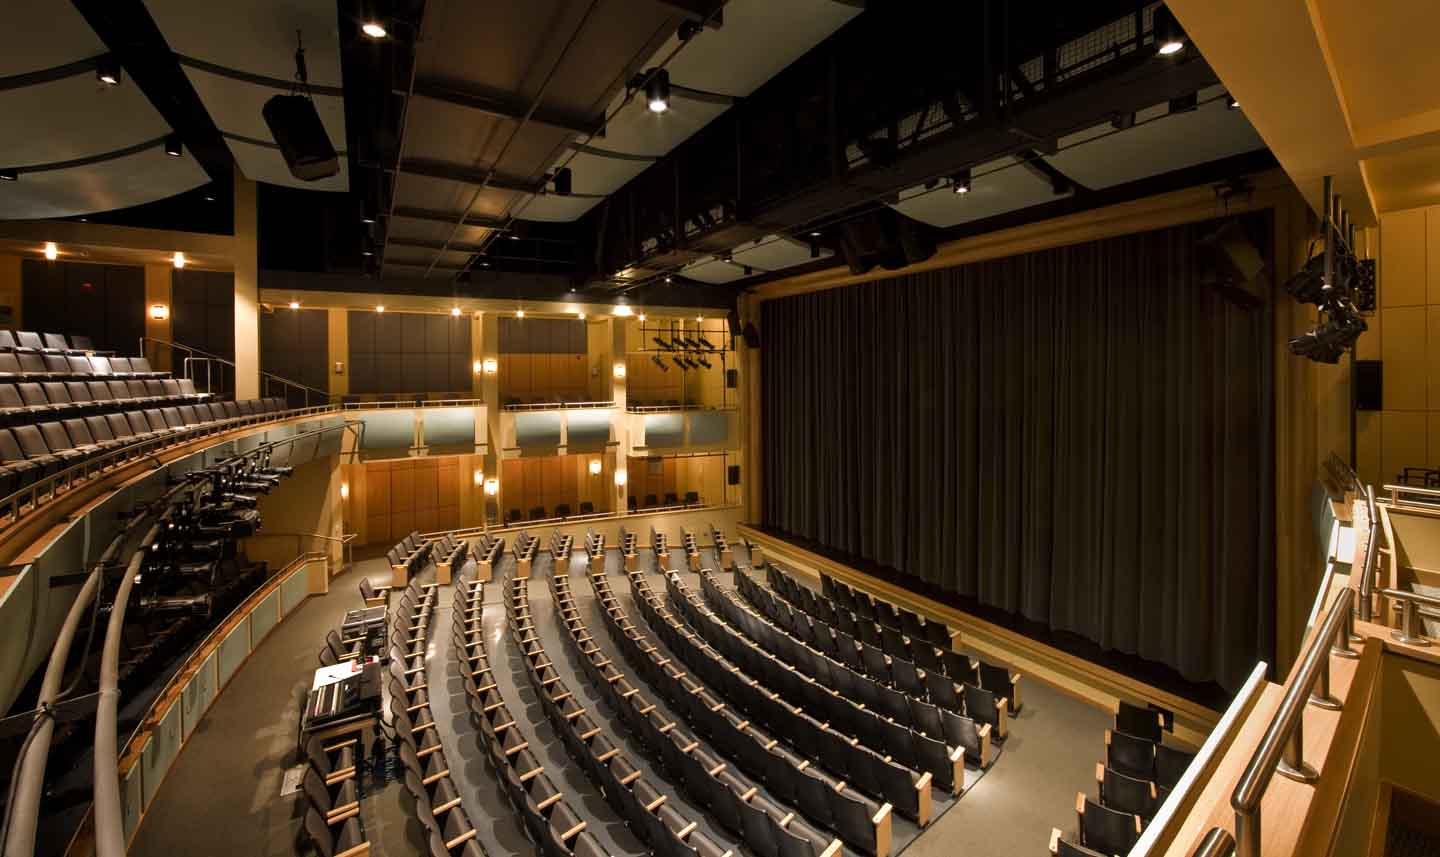 The Episcopal Academy's state-of-the-art MainStage Theater.  Mezzanine seating provides wonderful acoustics and there is truly not a bad seat in the house.